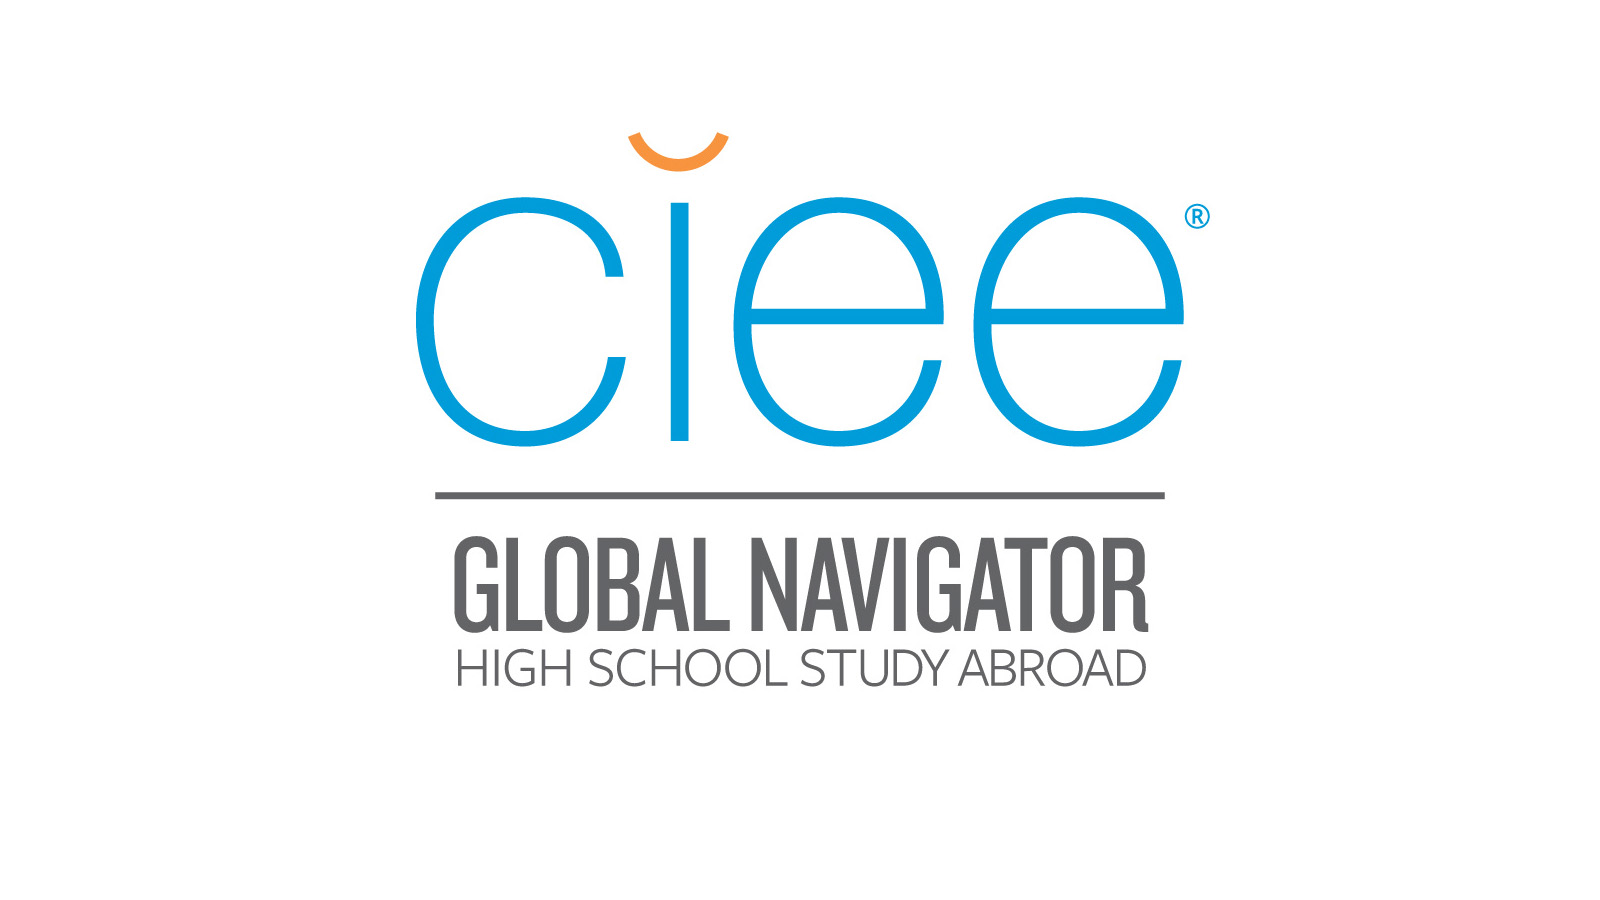 Gap Year Program CIEE Gap Year Abroad in Palma De Mallorca, Spain - Language & Culture